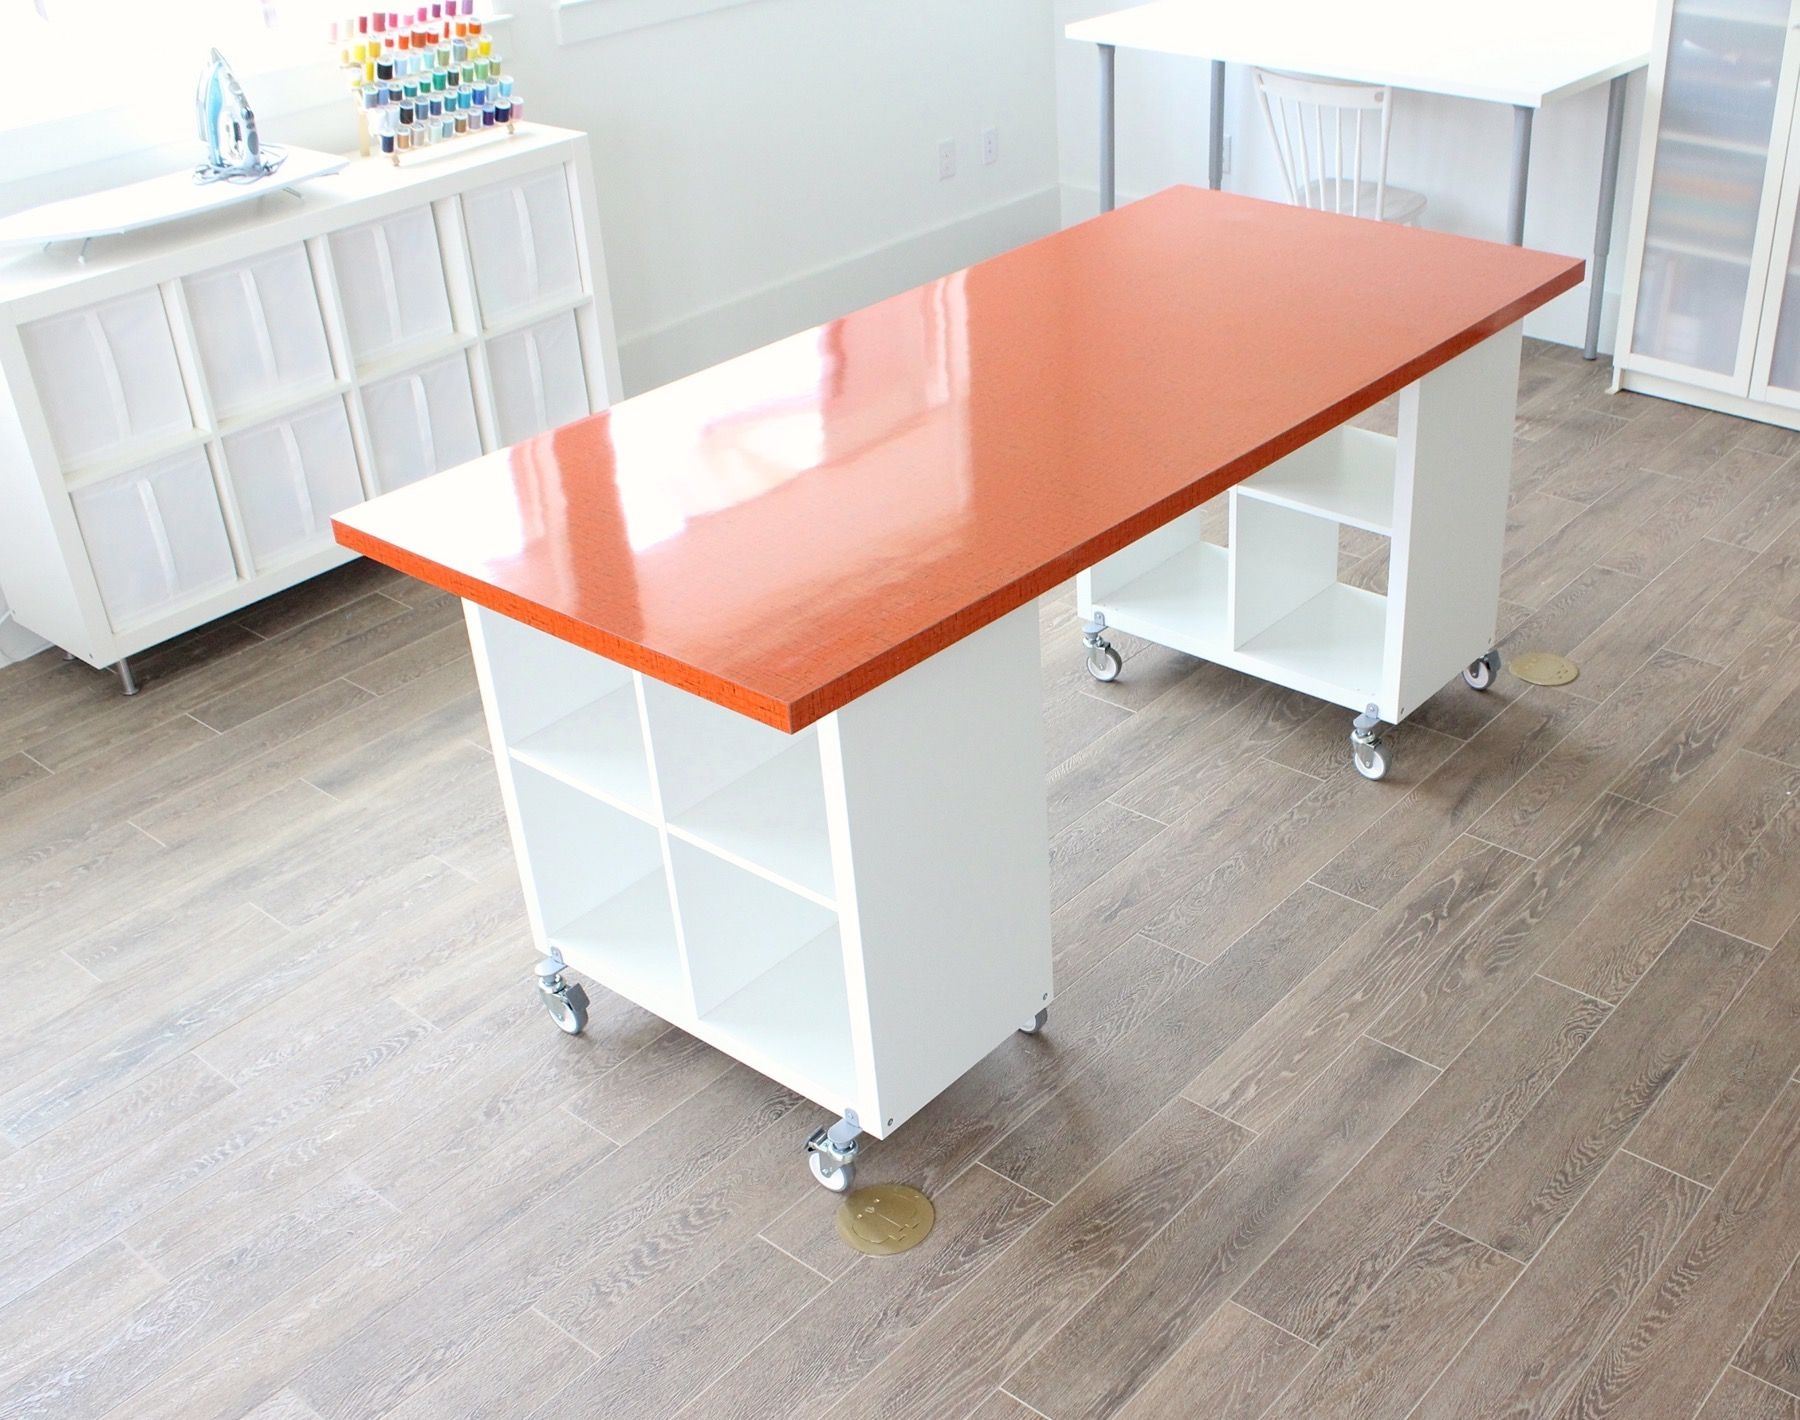 building a new home: the formica craft table! – made everyday